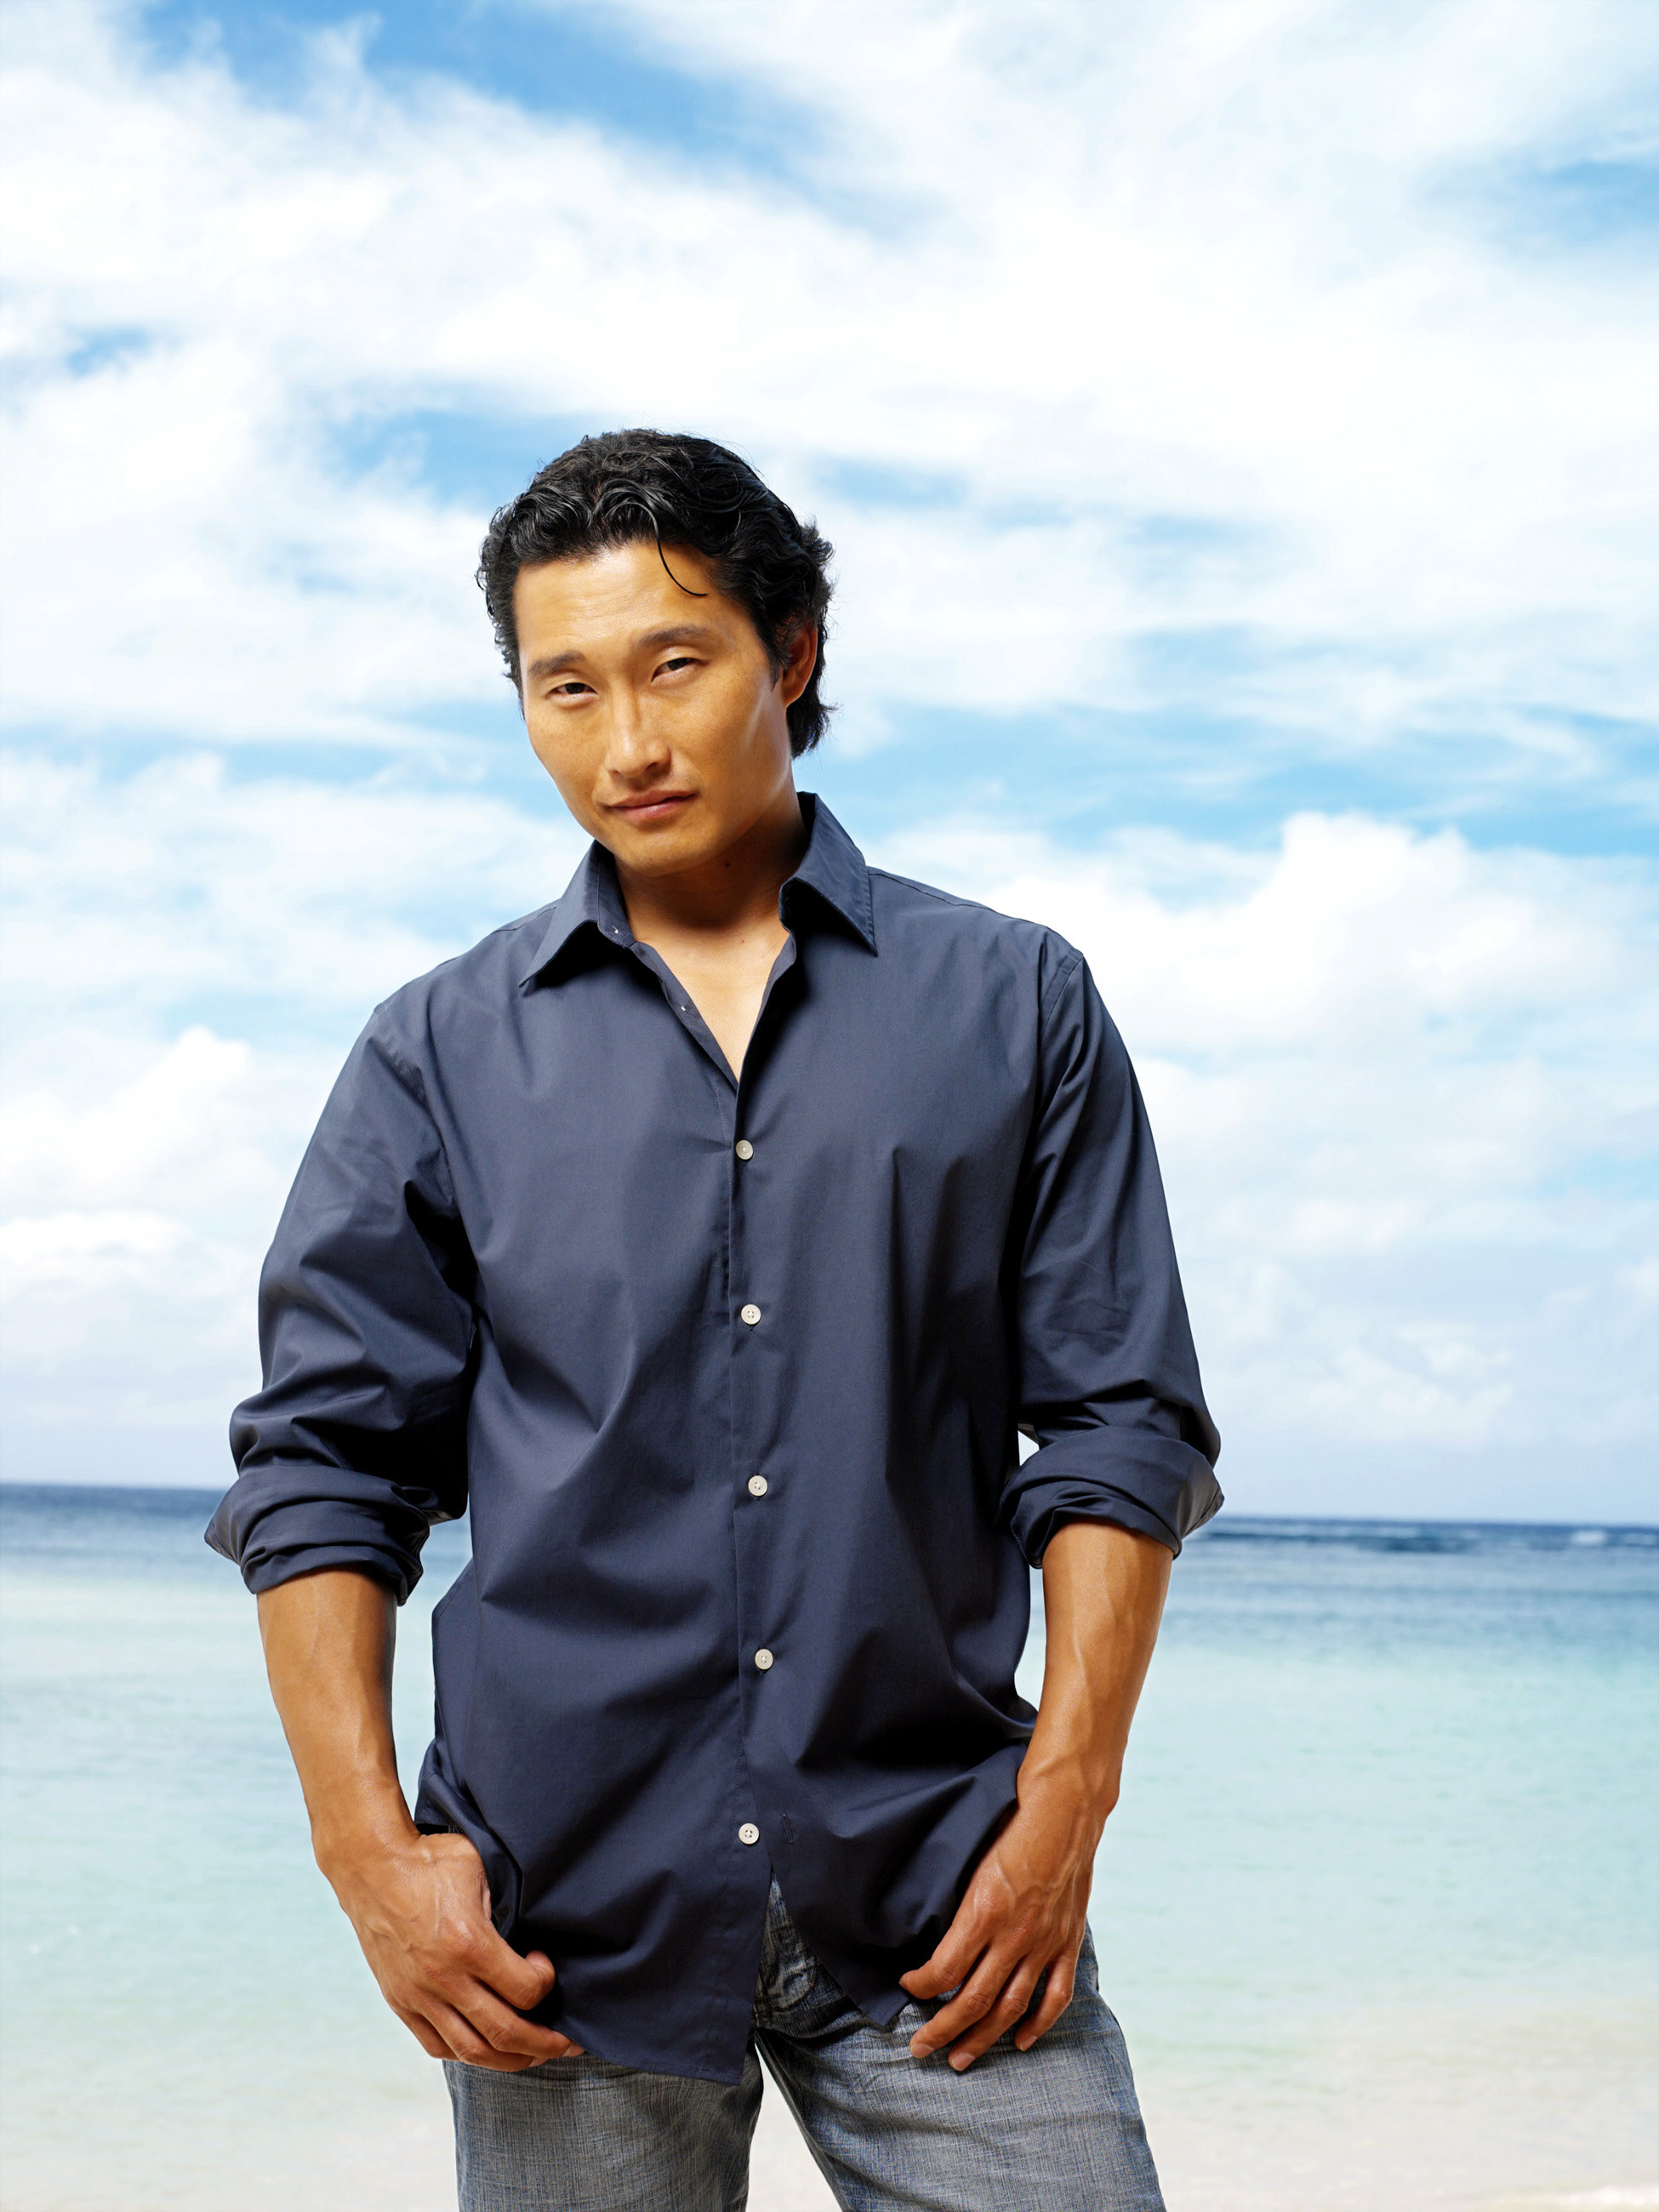 A promo photo of Kim from Lost